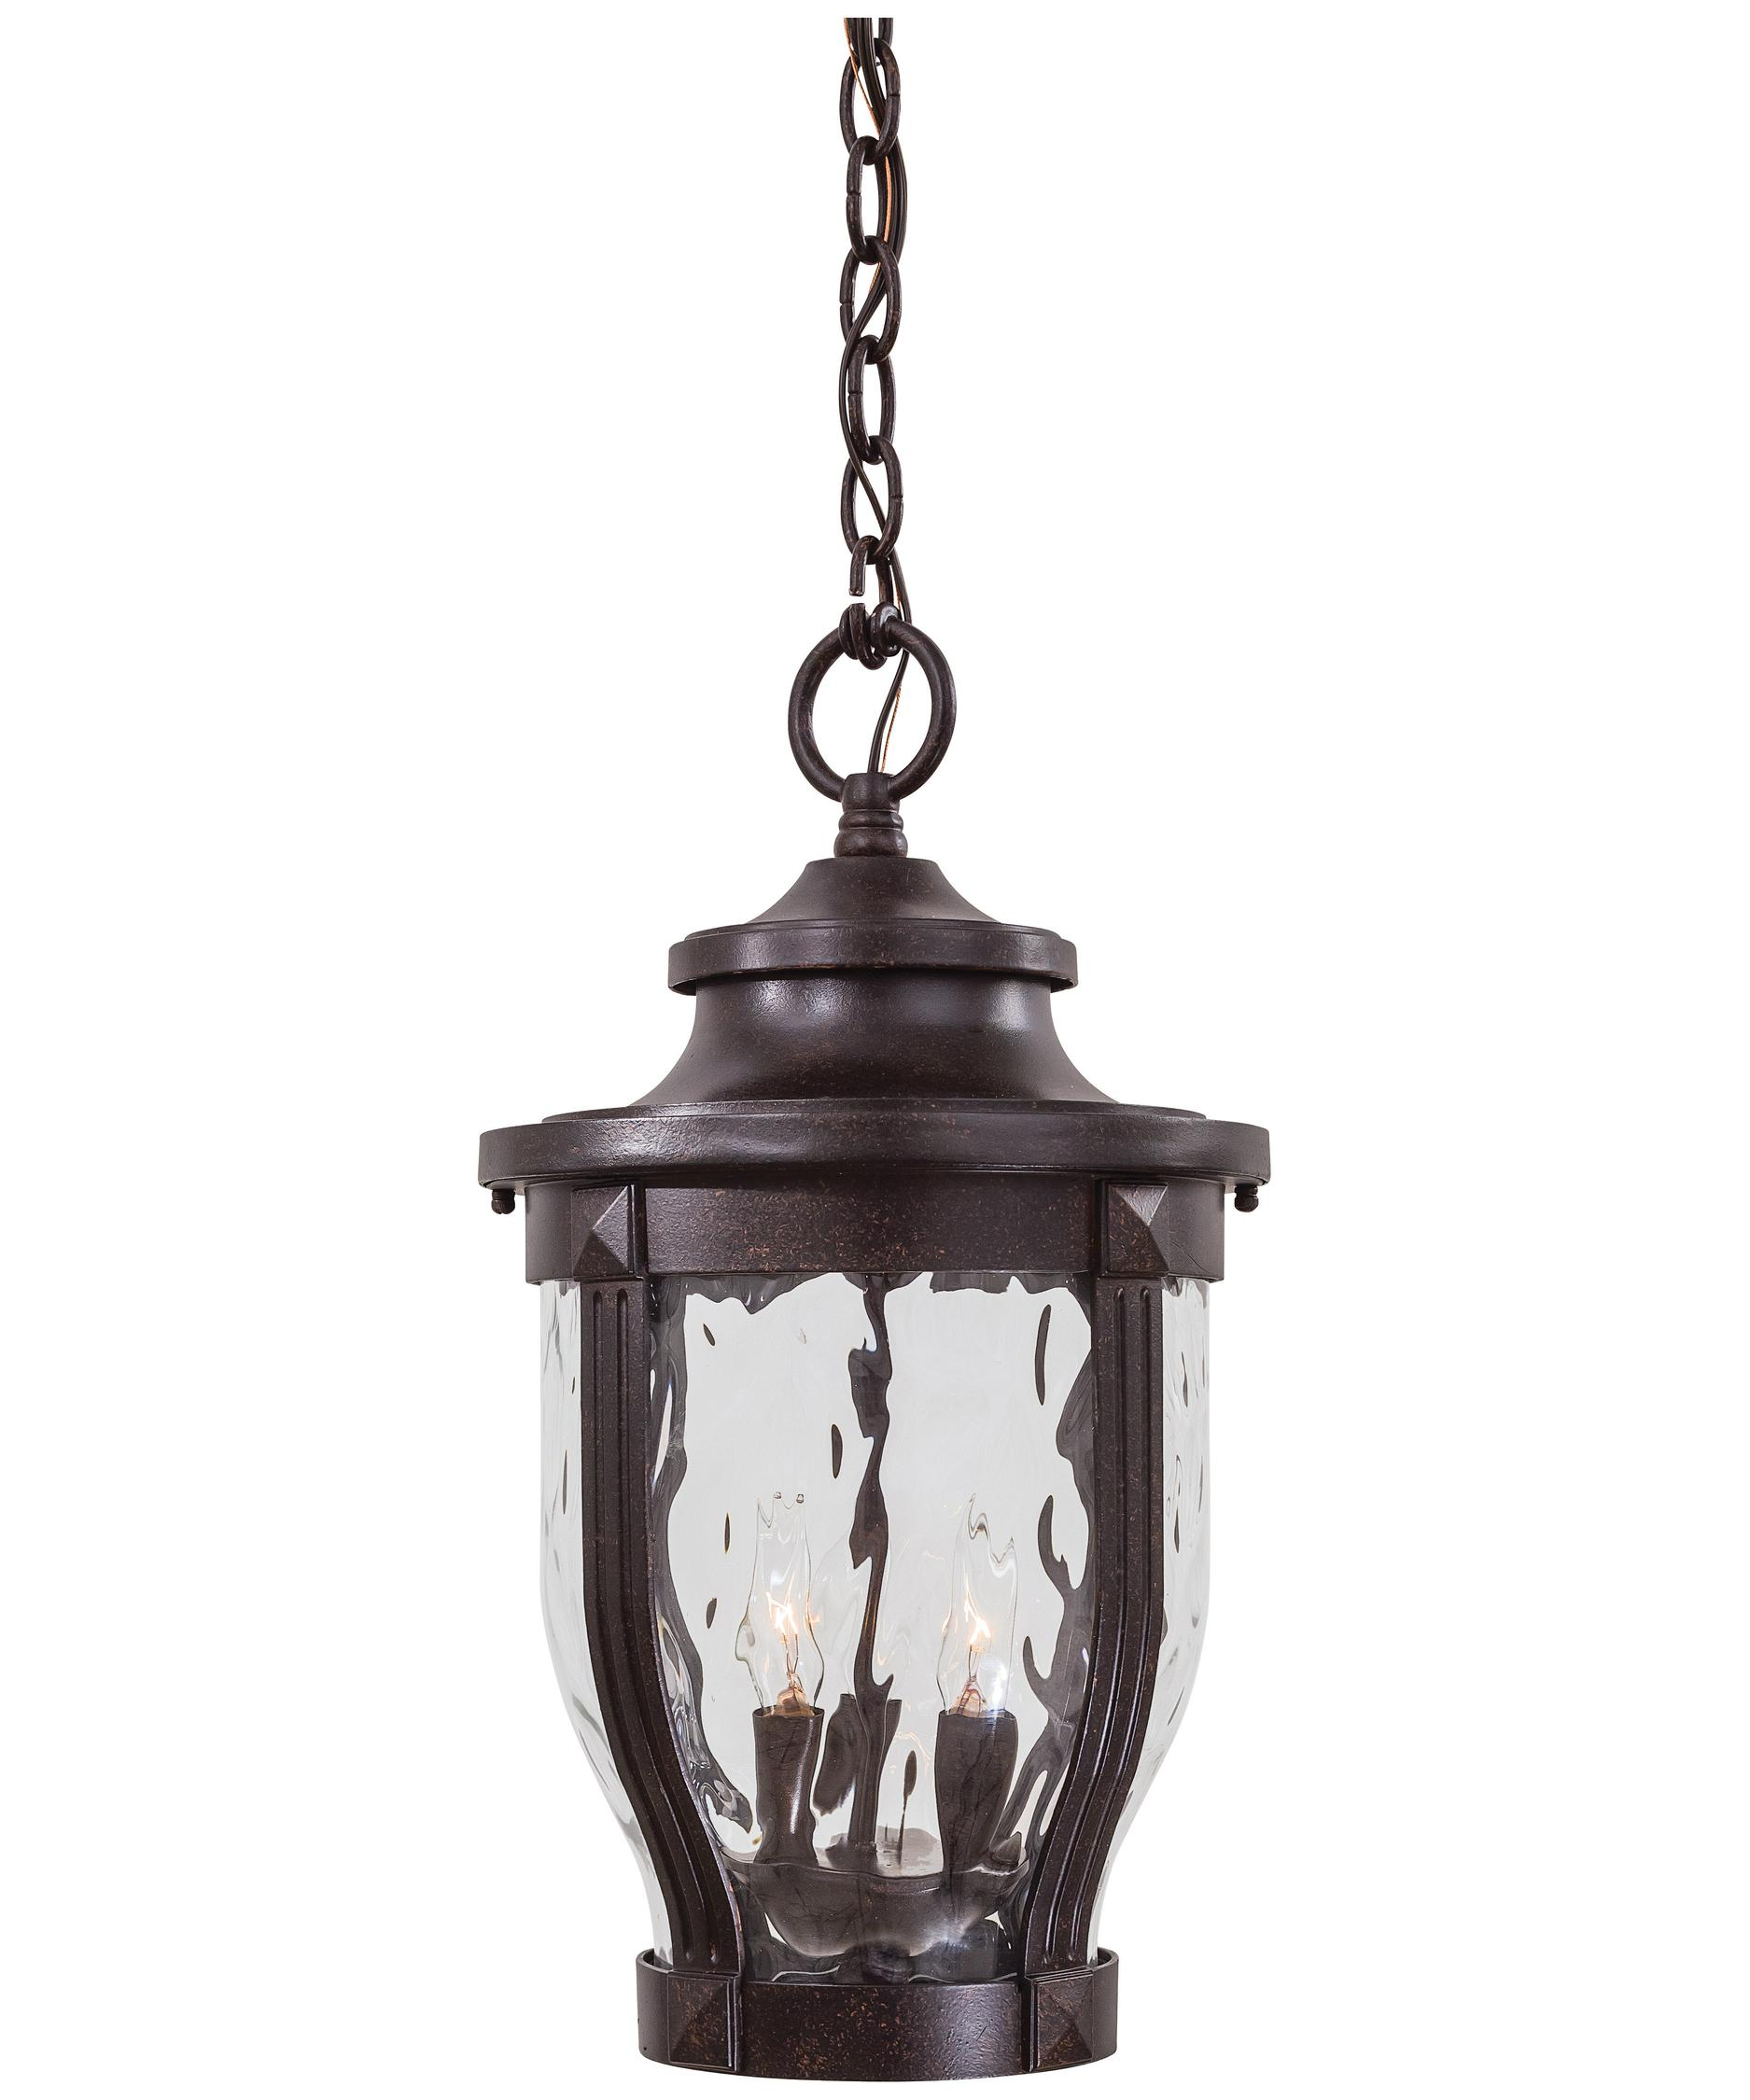 Outdoor hanging lamp - Shown In Corona Bronze Finish And Clear Hammered Glass